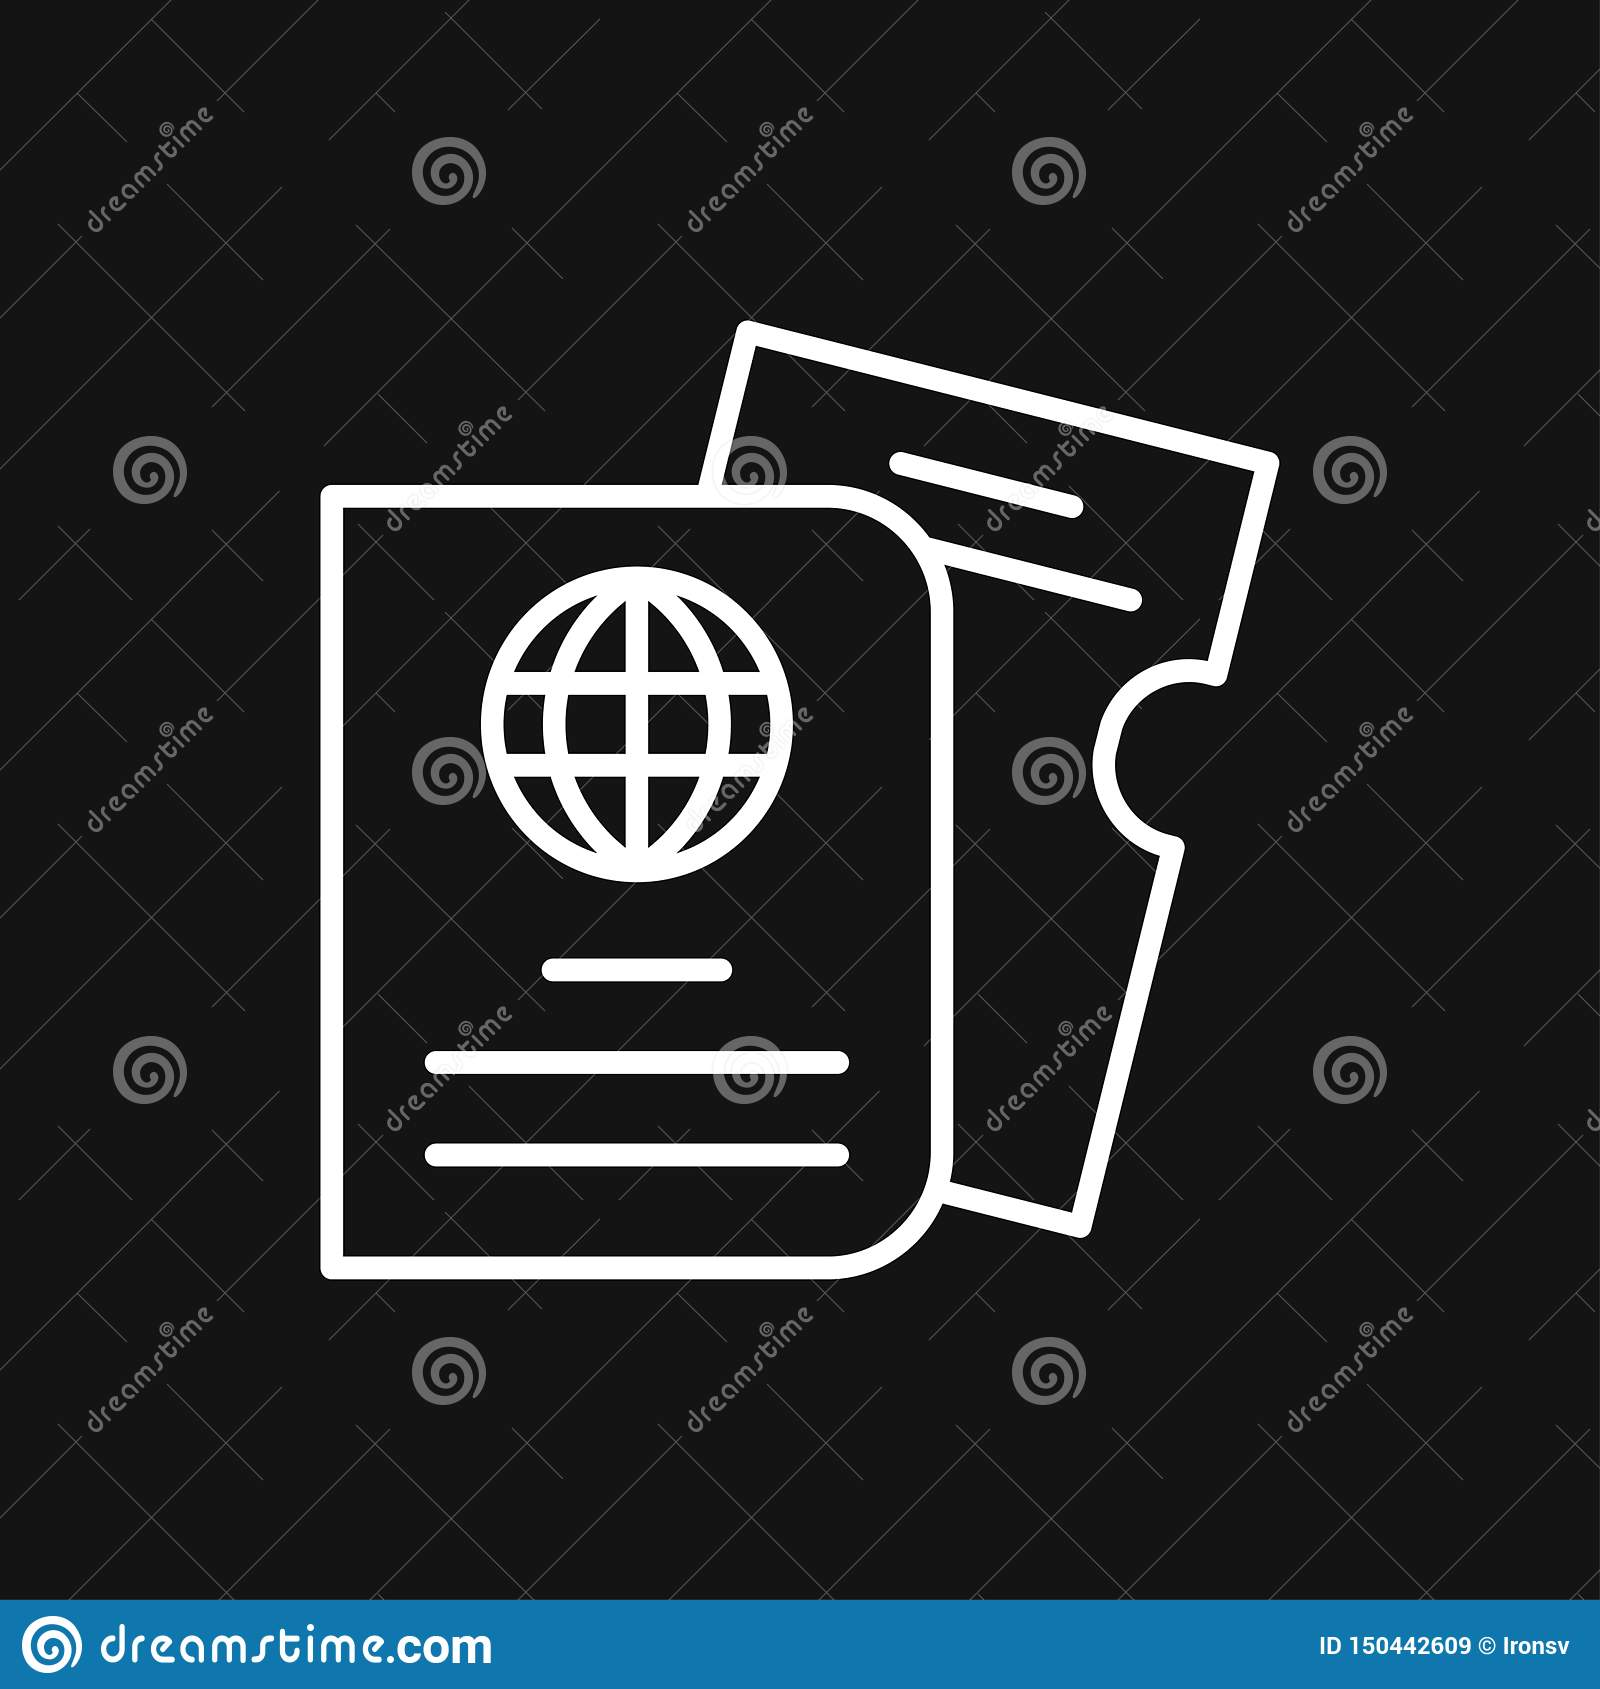 Travel documents icon, passport with tickets flat icon isolated. Concept travel and tourism